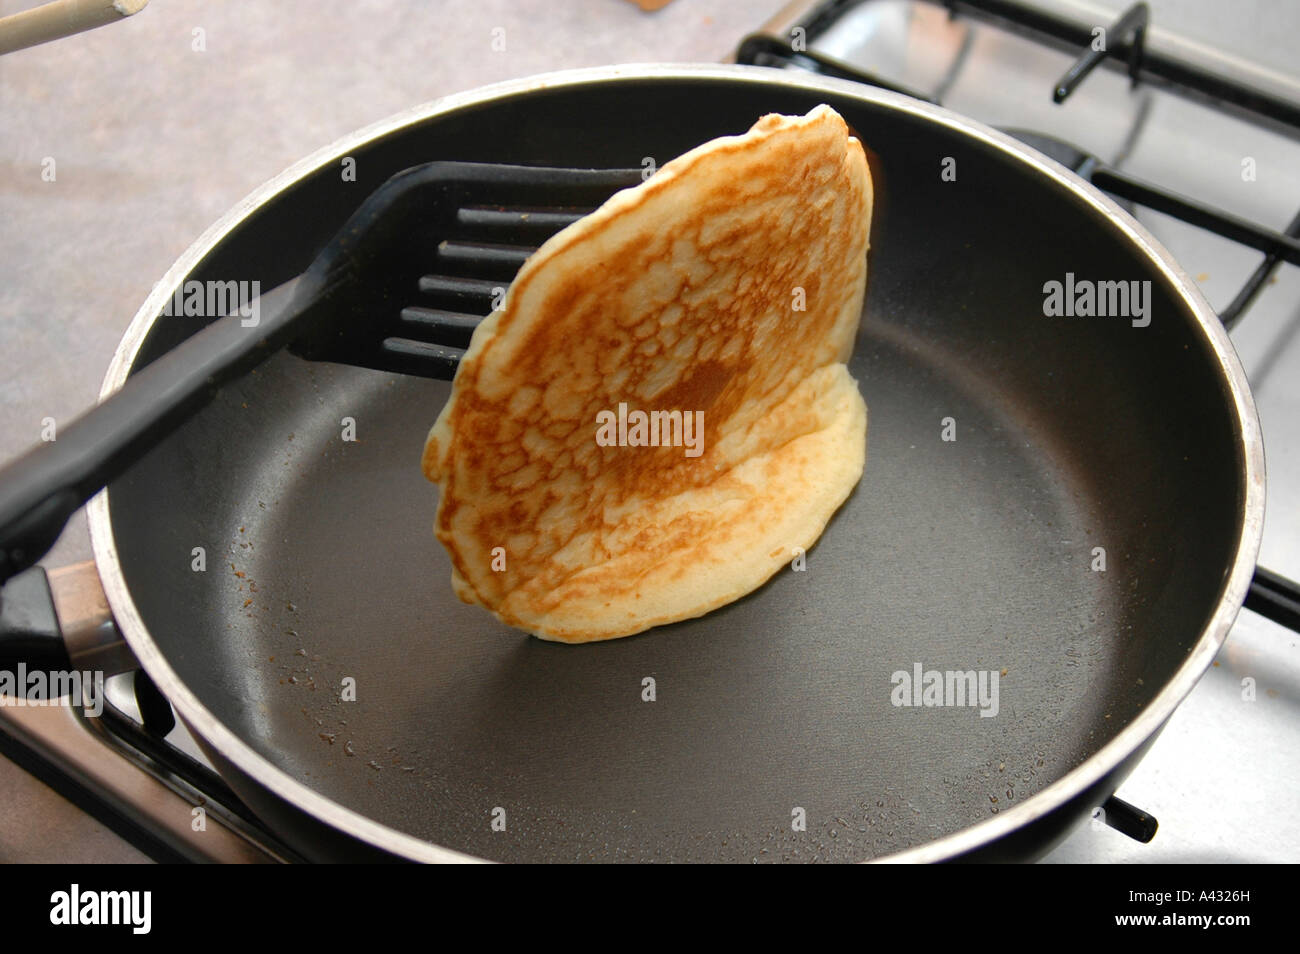 Cooking A Cake In A Frying Pan